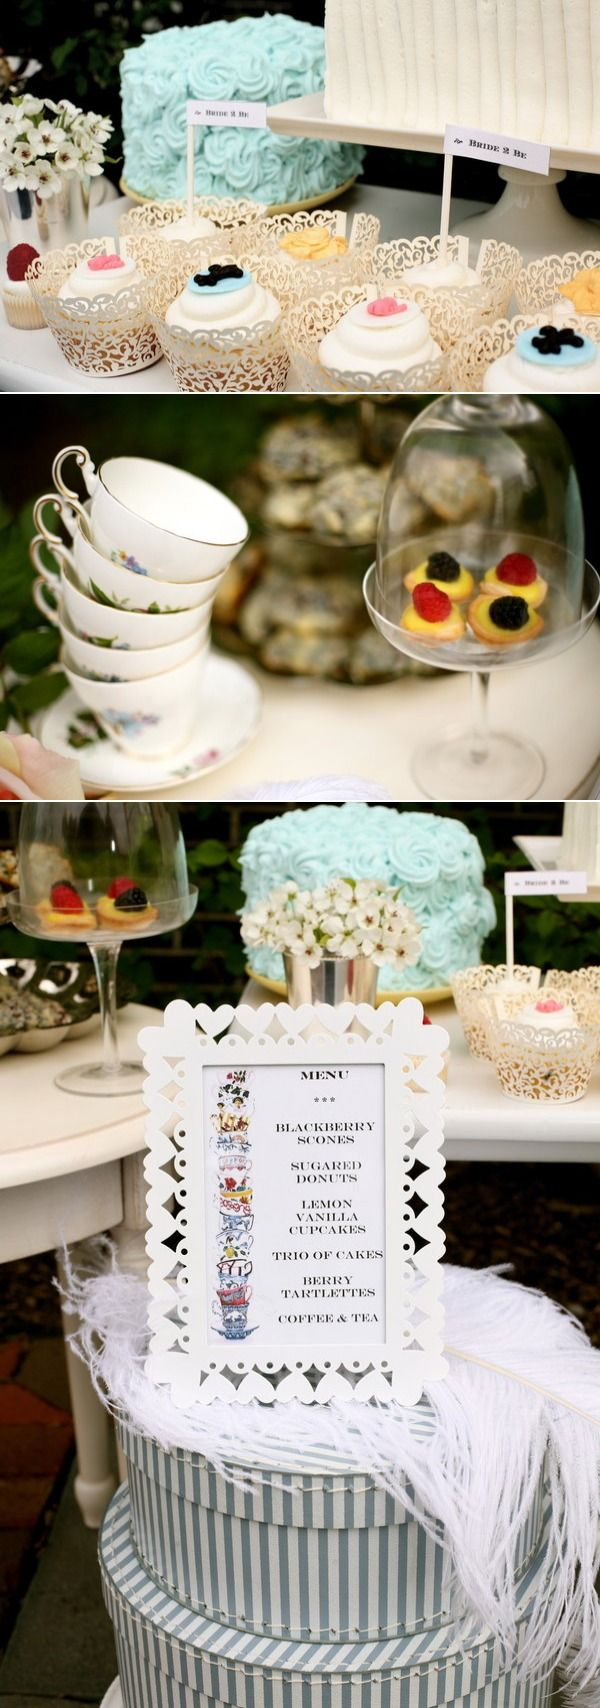 bridal shower teparty decorations%0A Tea Party Bridal Shower by The Hudson Cakery